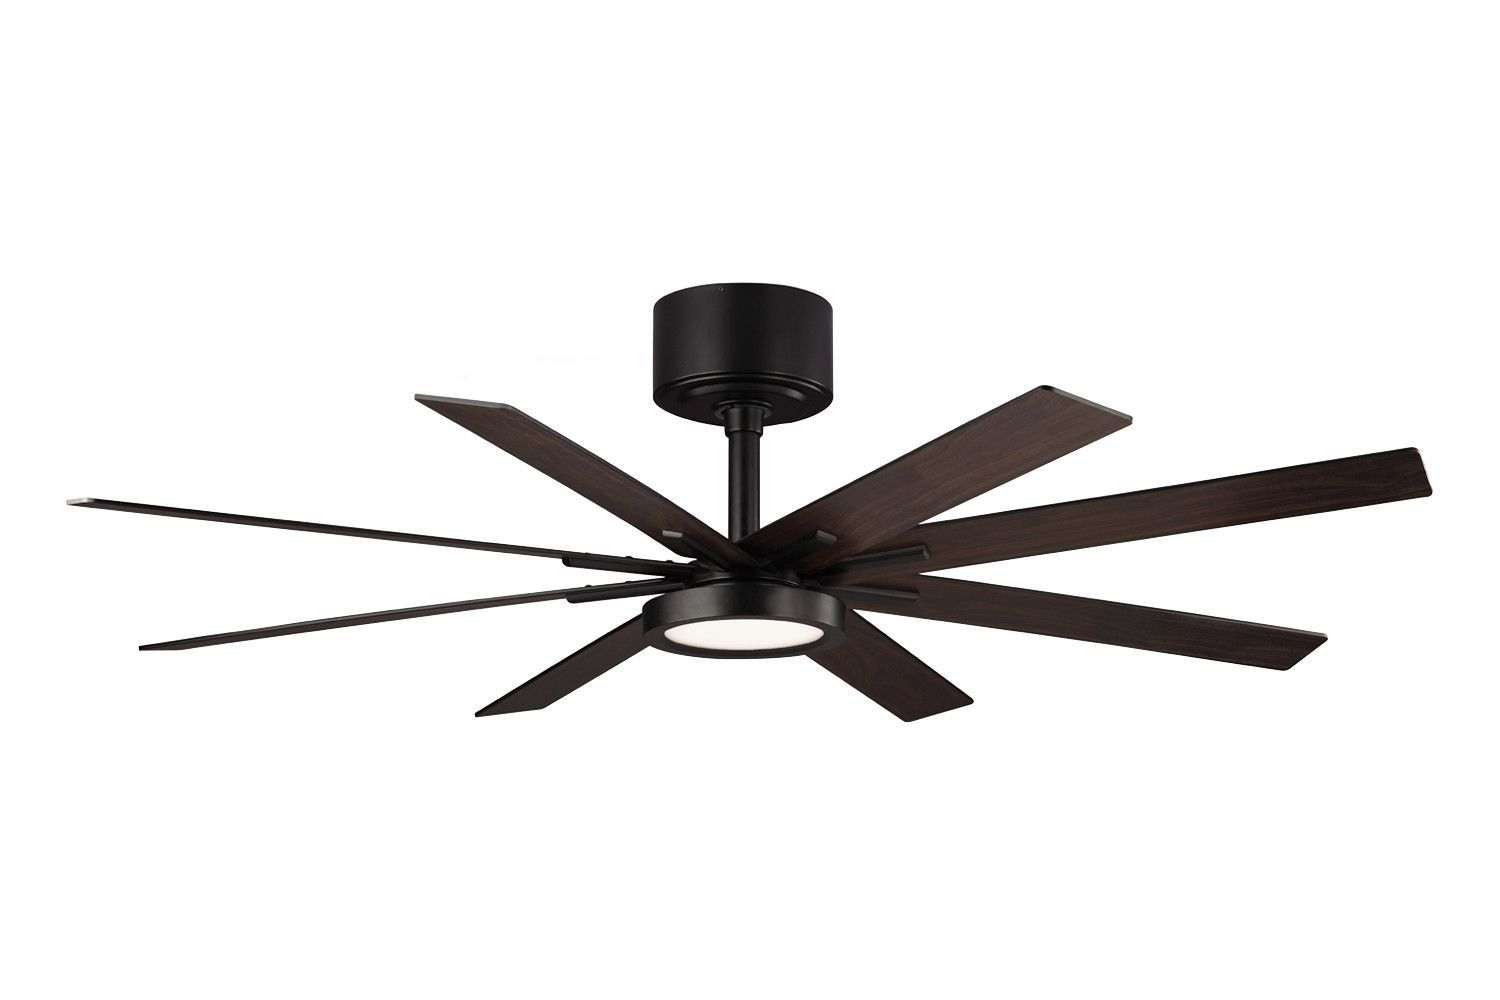 Monte carlo 60 empire matte black ceiling fan 8eer60bkd monte carlo 60 empire matte black ceiling fan 8eer60bkd aloadofball Image collections